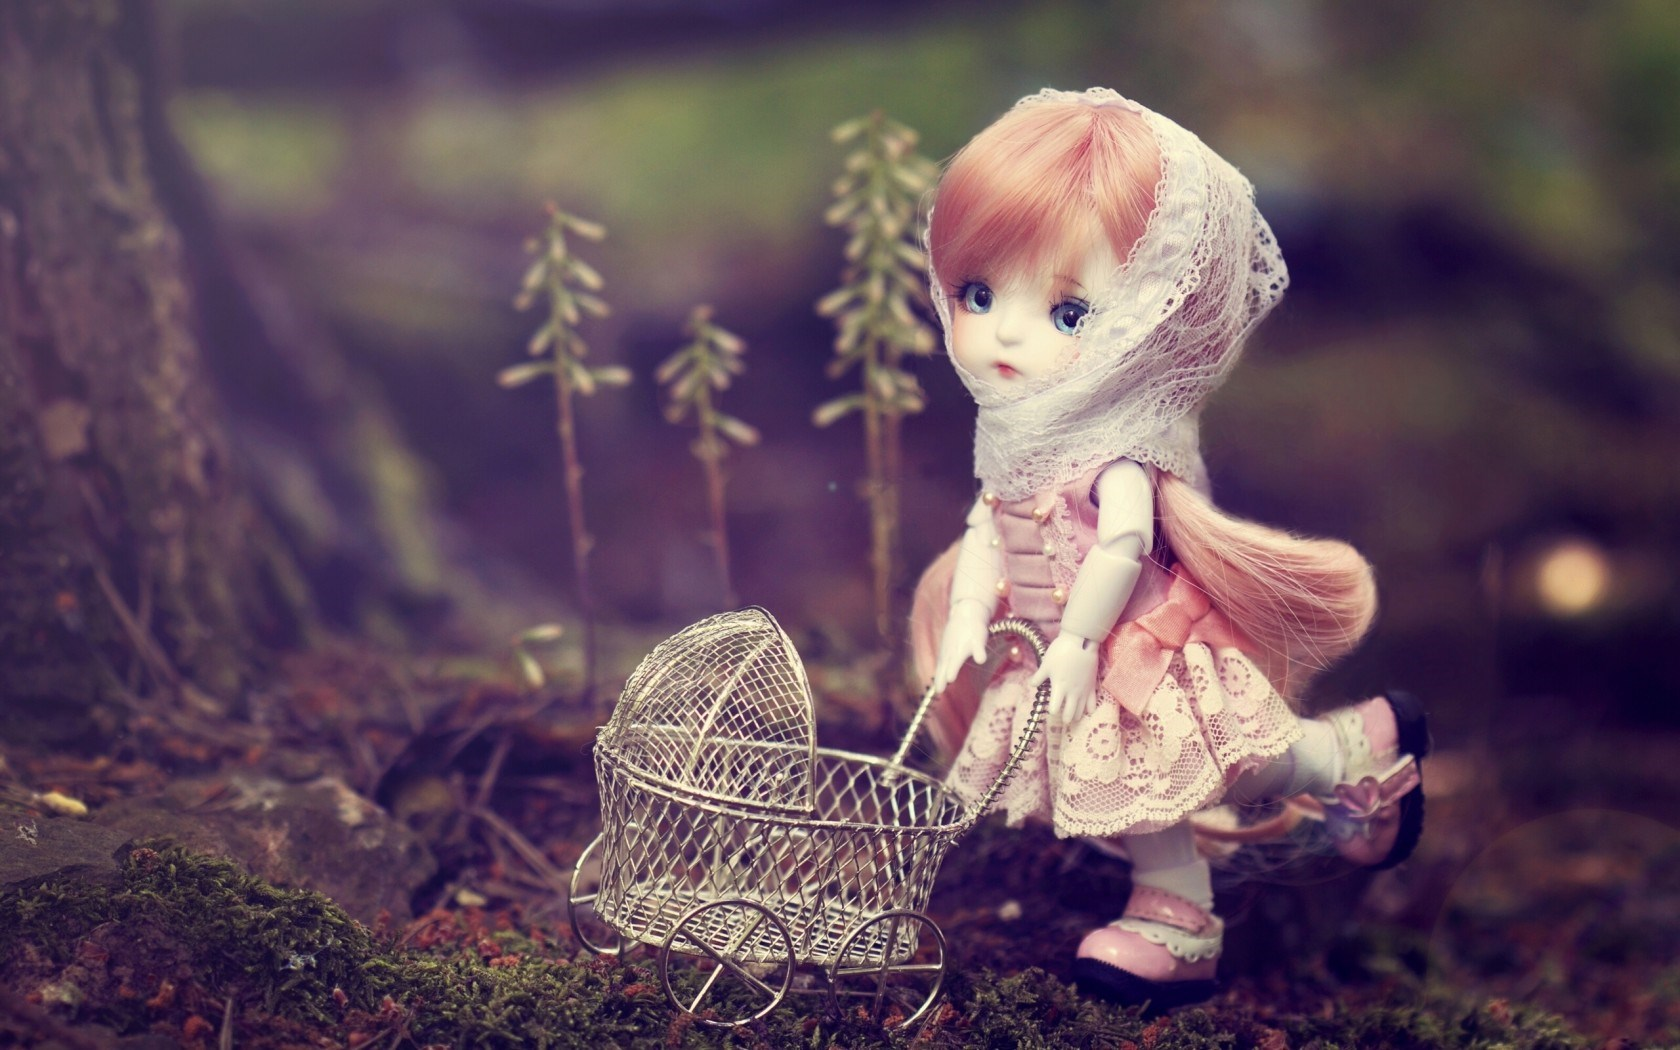 Baby Doll   Wallpaper High Definition High Quality Widescreen 1680x1050